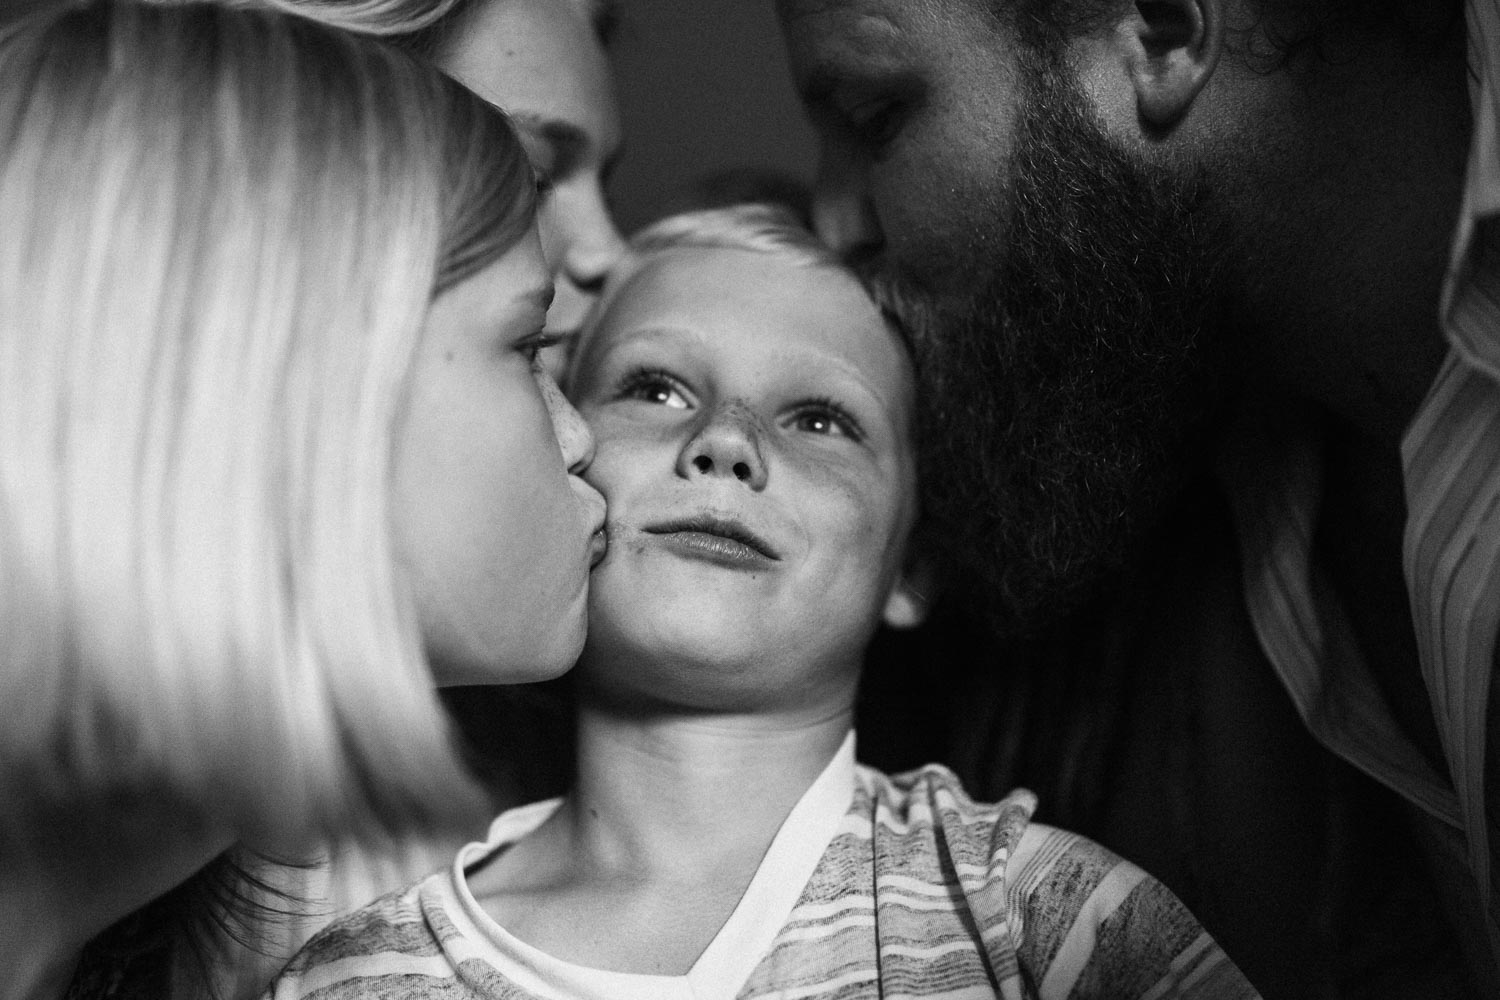 candid-black-and-white-family-photo-kissing-little-brother-during-in-home-session-with-jen-fairchild-in-salt-lake-city-utah